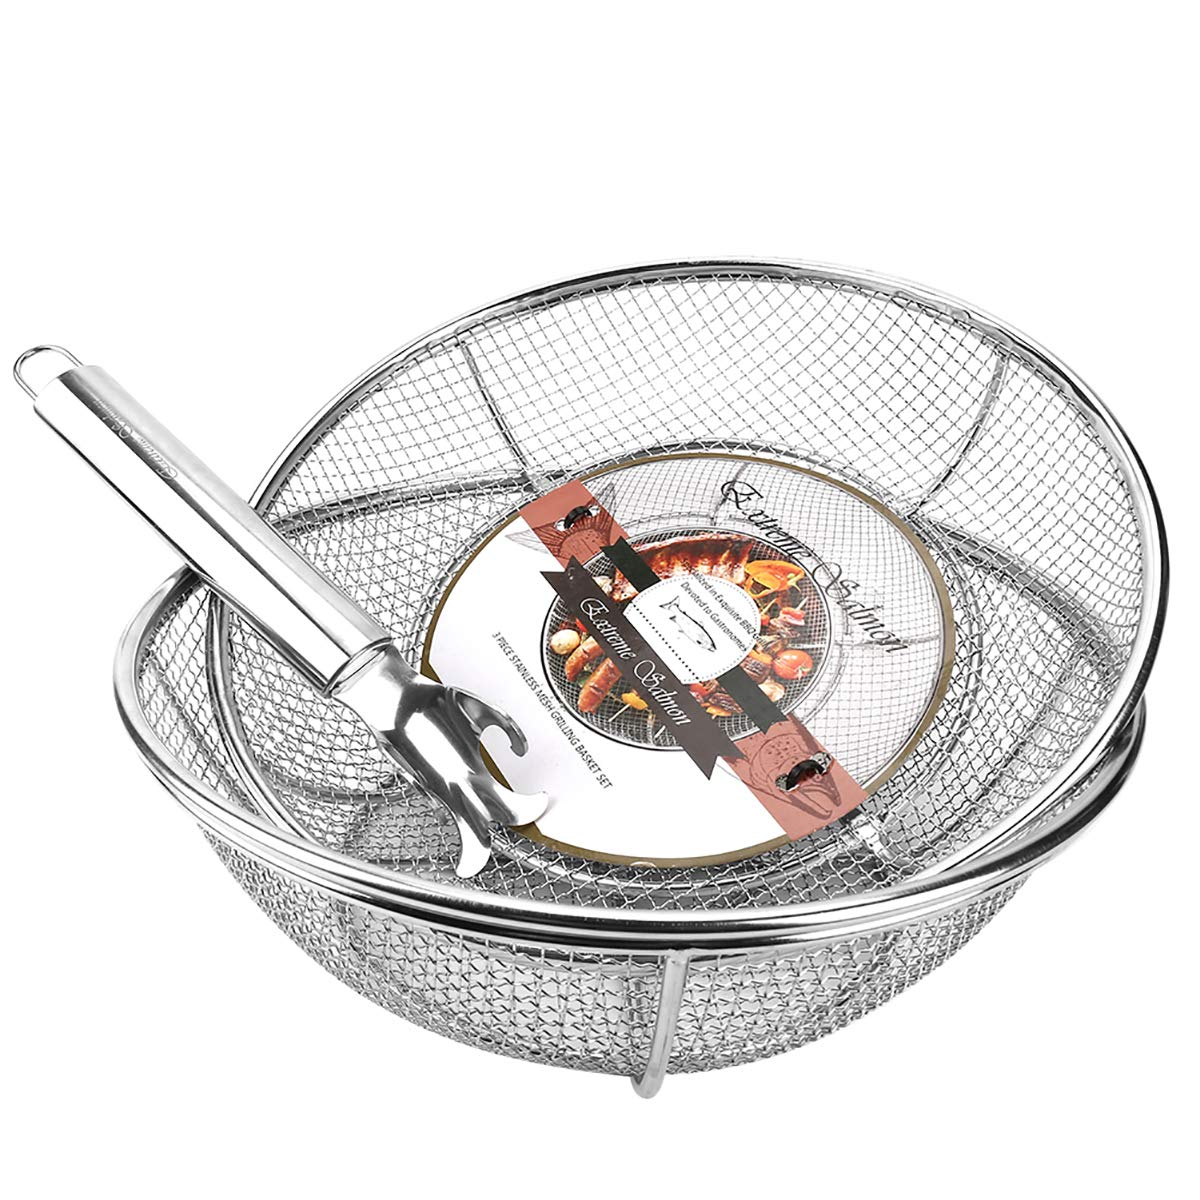 Grill Basket, Grill Accessories Set Heavy Duty Barbecue Grilling Basket Vegetables Stainless Steel Veggies Grill Topper Cookware with Handles Charcoal Gas Outdoor Grill Cooking by Extreme Salmon